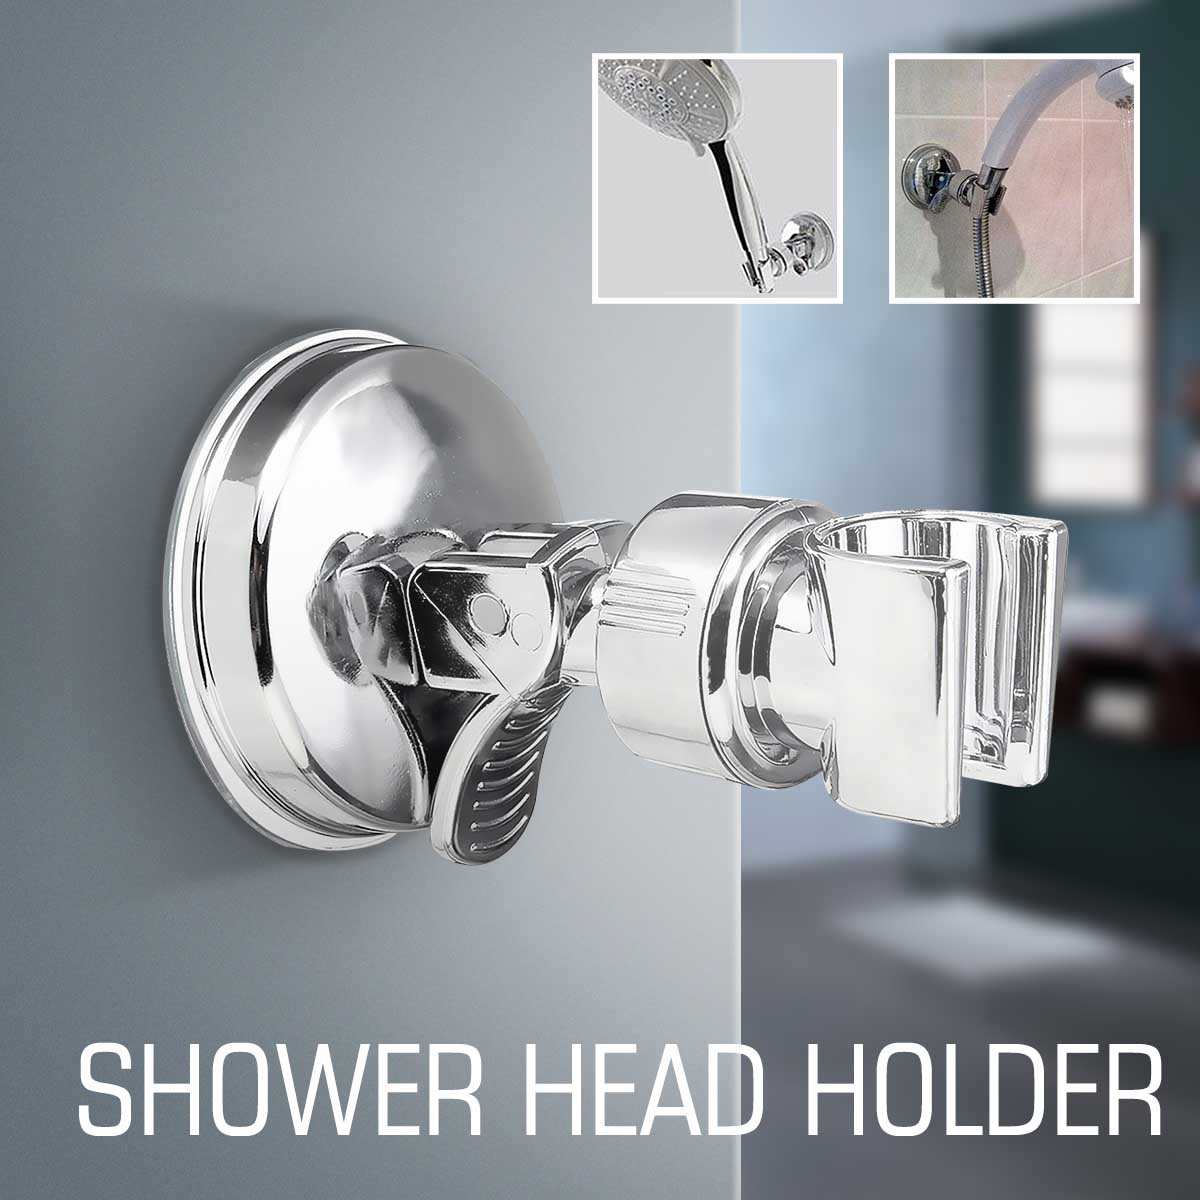 xueqin-shower-mounting-brackets-bathroom-adjustable-shower-head-holder-rack-bracket-suction-cup-wall-mounted-replacement-holder